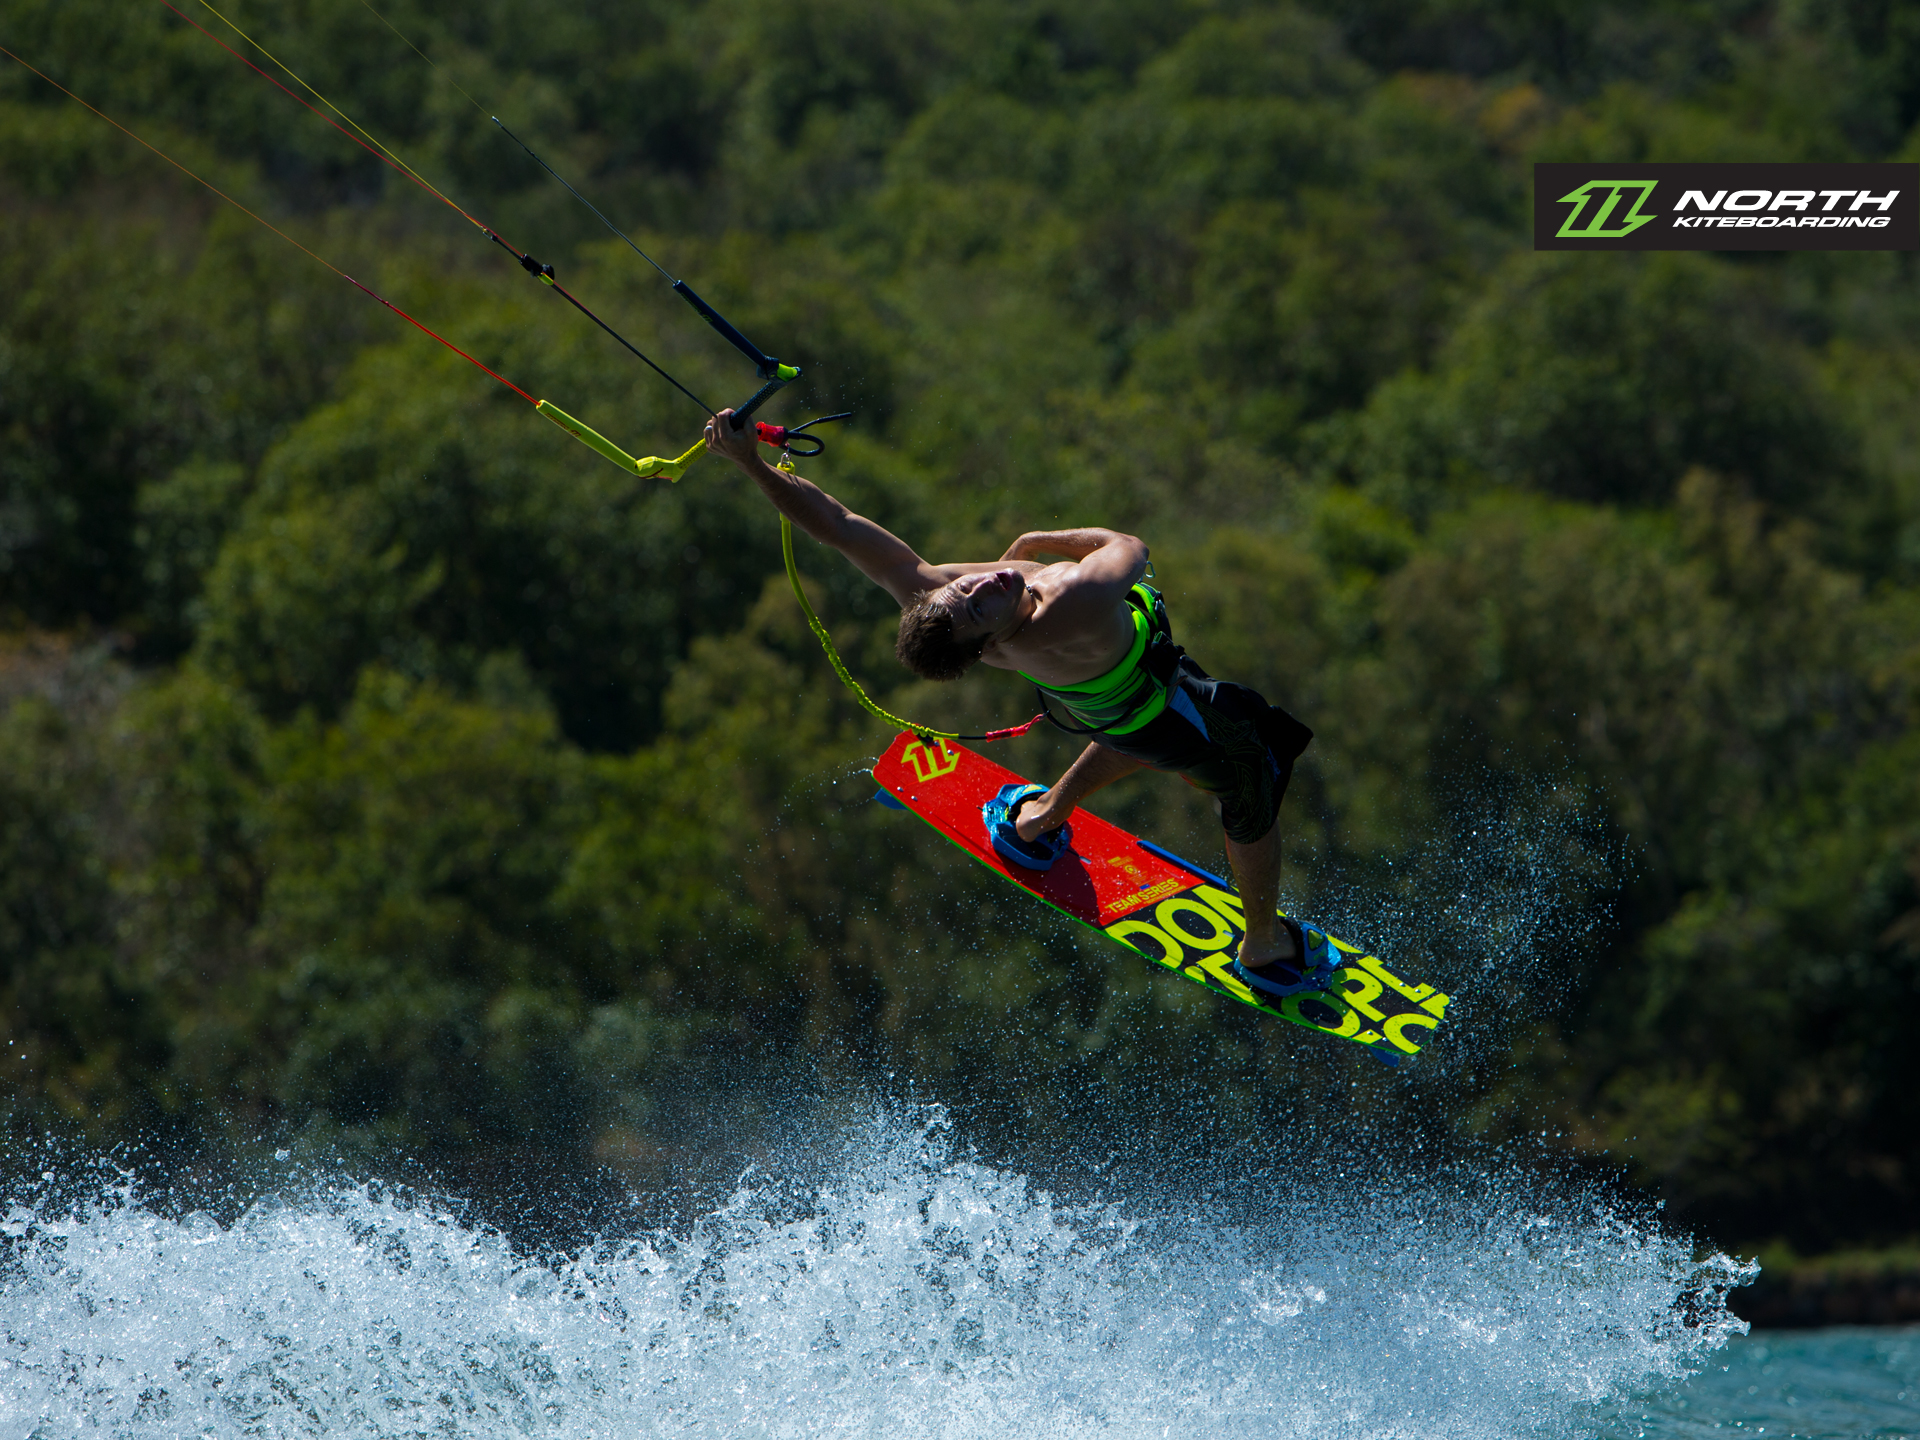 kitesurf wallpaper image - Tom Hebert swinging on one arm and riding the 2015 North Team Series - North kiteboarding - in resolution: Standard 4:3 1920 X 1440